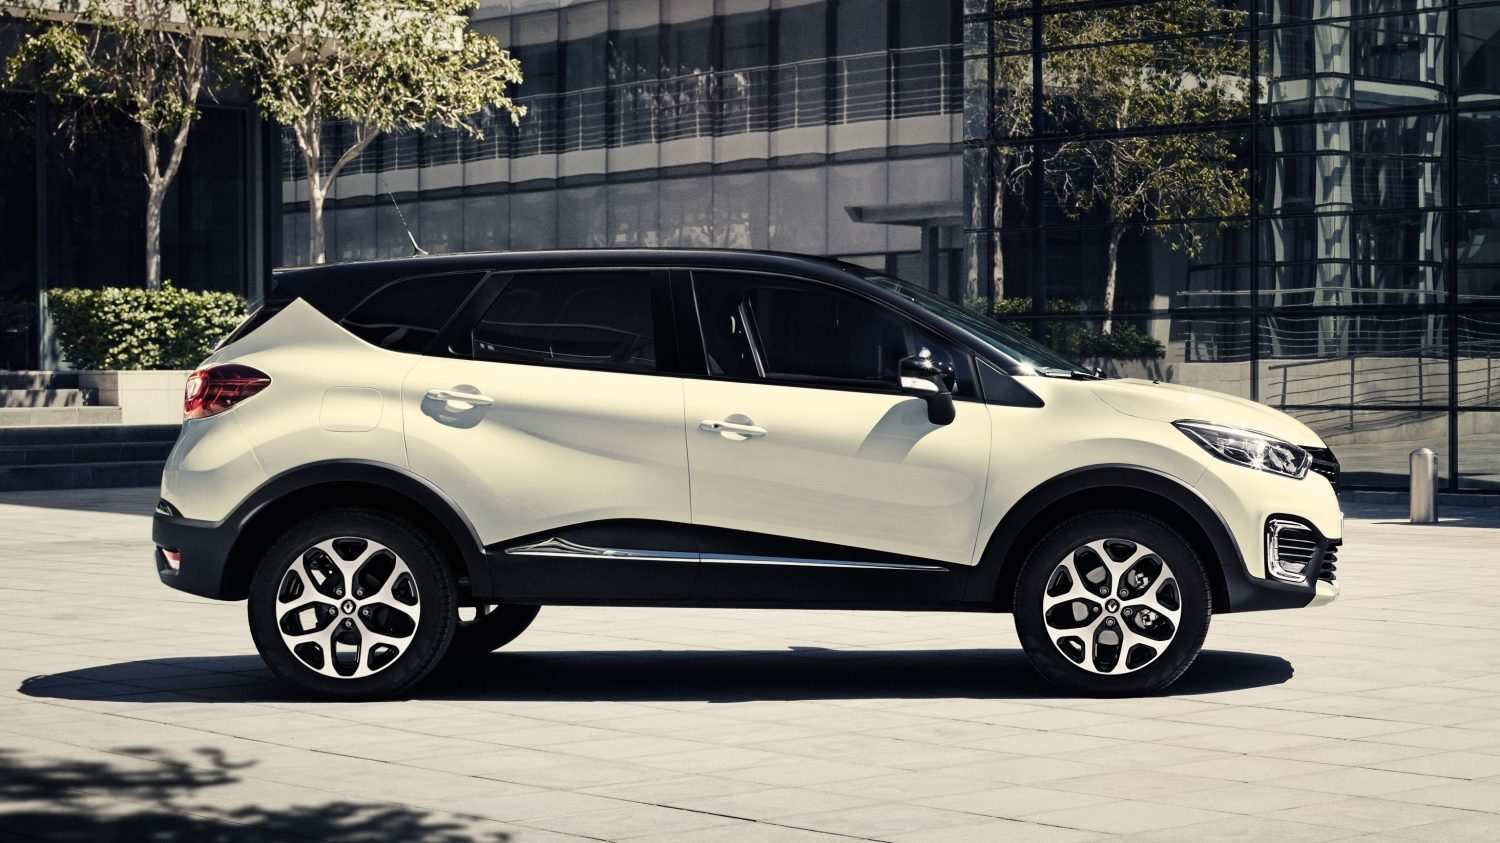 51 New Renault Mexico 2019 New Review for Renault Mexico 2019